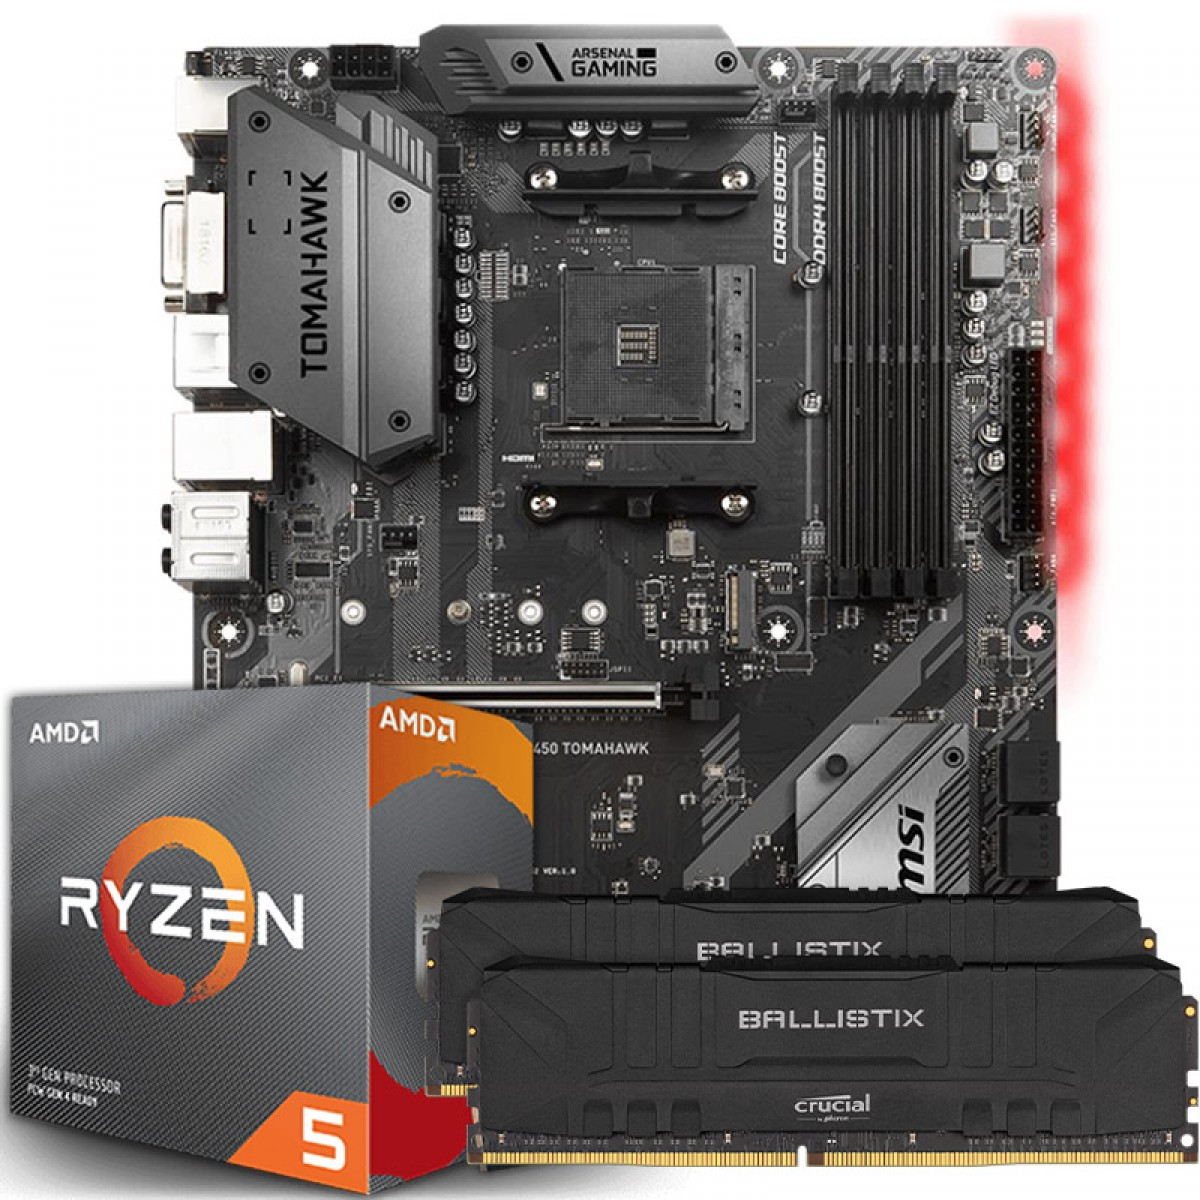 Kit Upgrade, AMD Ryzen 5 3600X, MSI B450 Tomahawk, Memória DDR4 16GB (2X8GB) 3000MHz